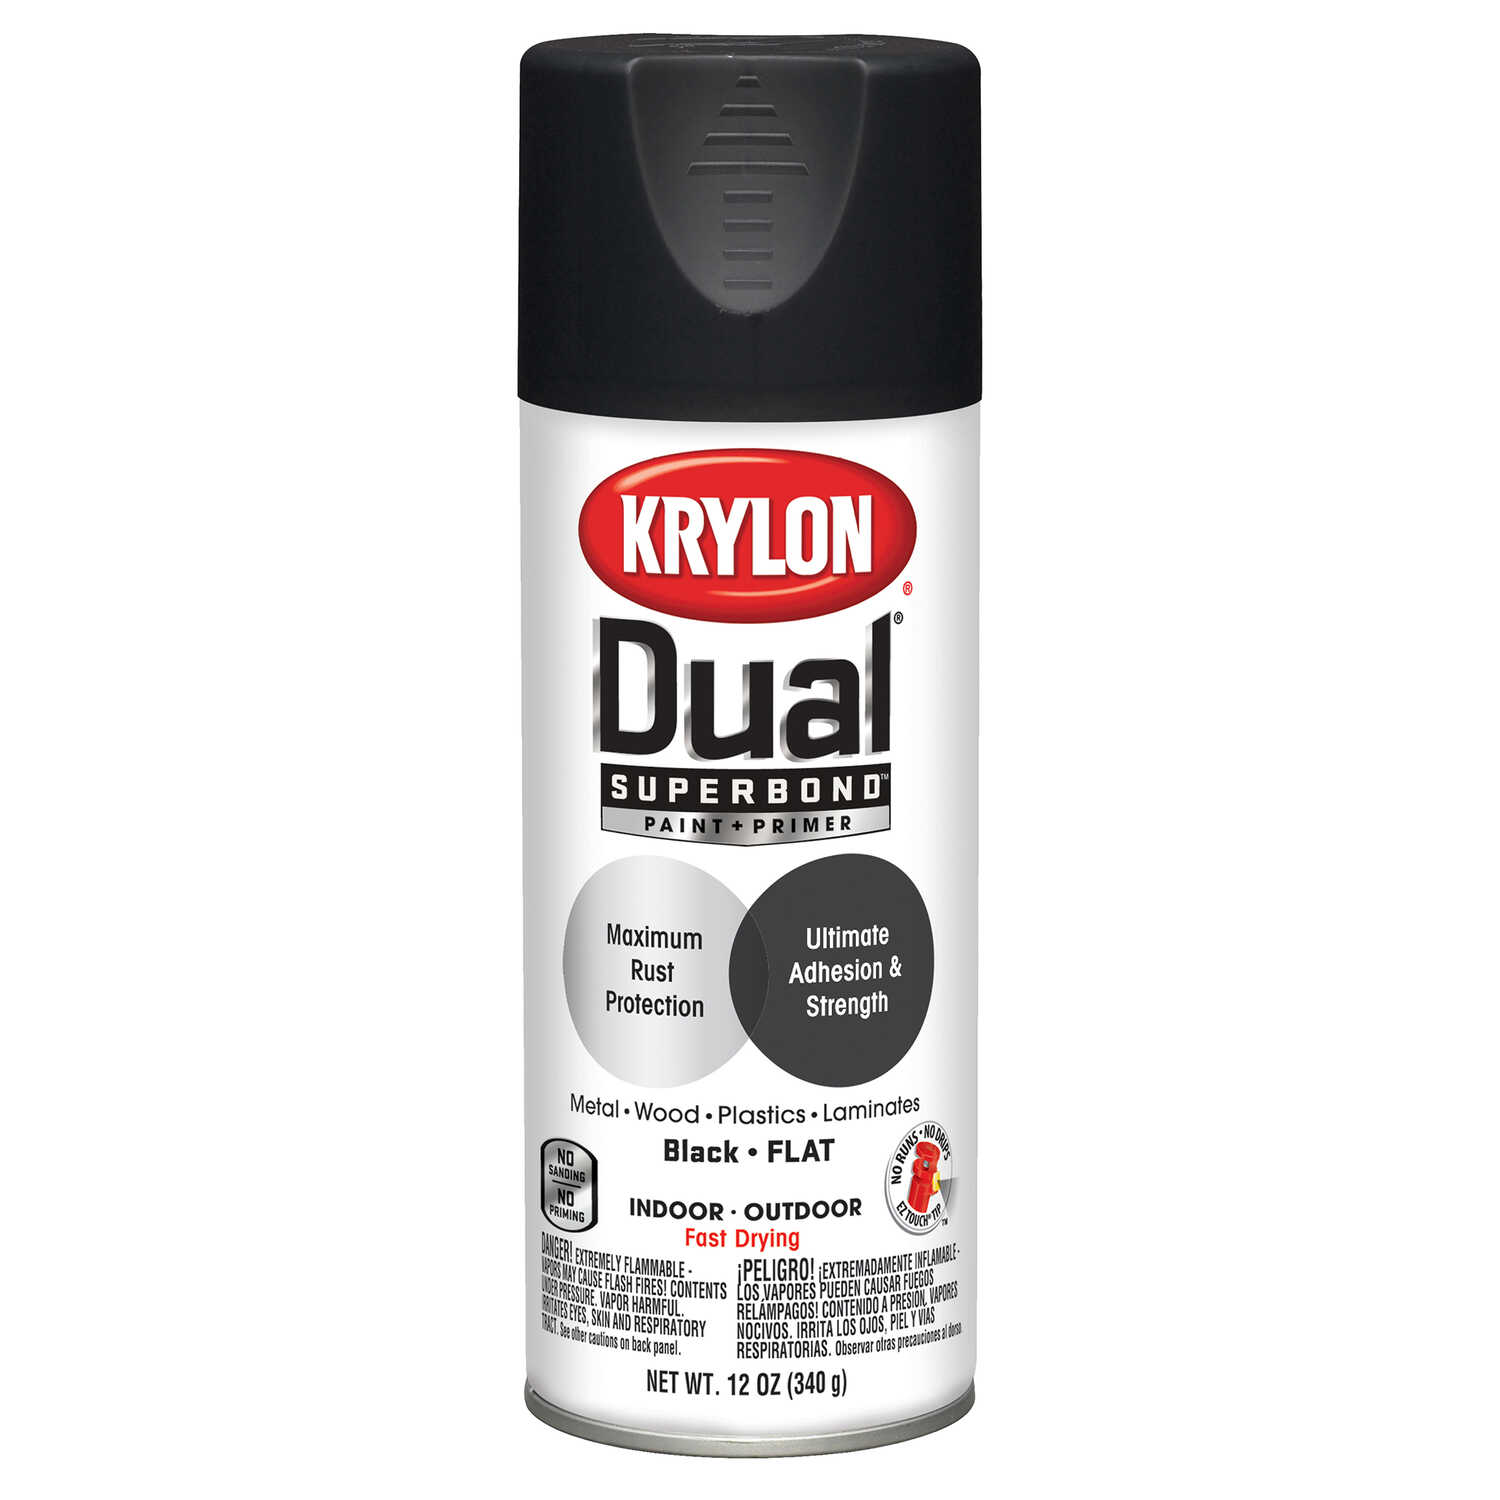 Krylon  Dual  Flat  Black  Paint + Primer Spray Paint  12 oz.